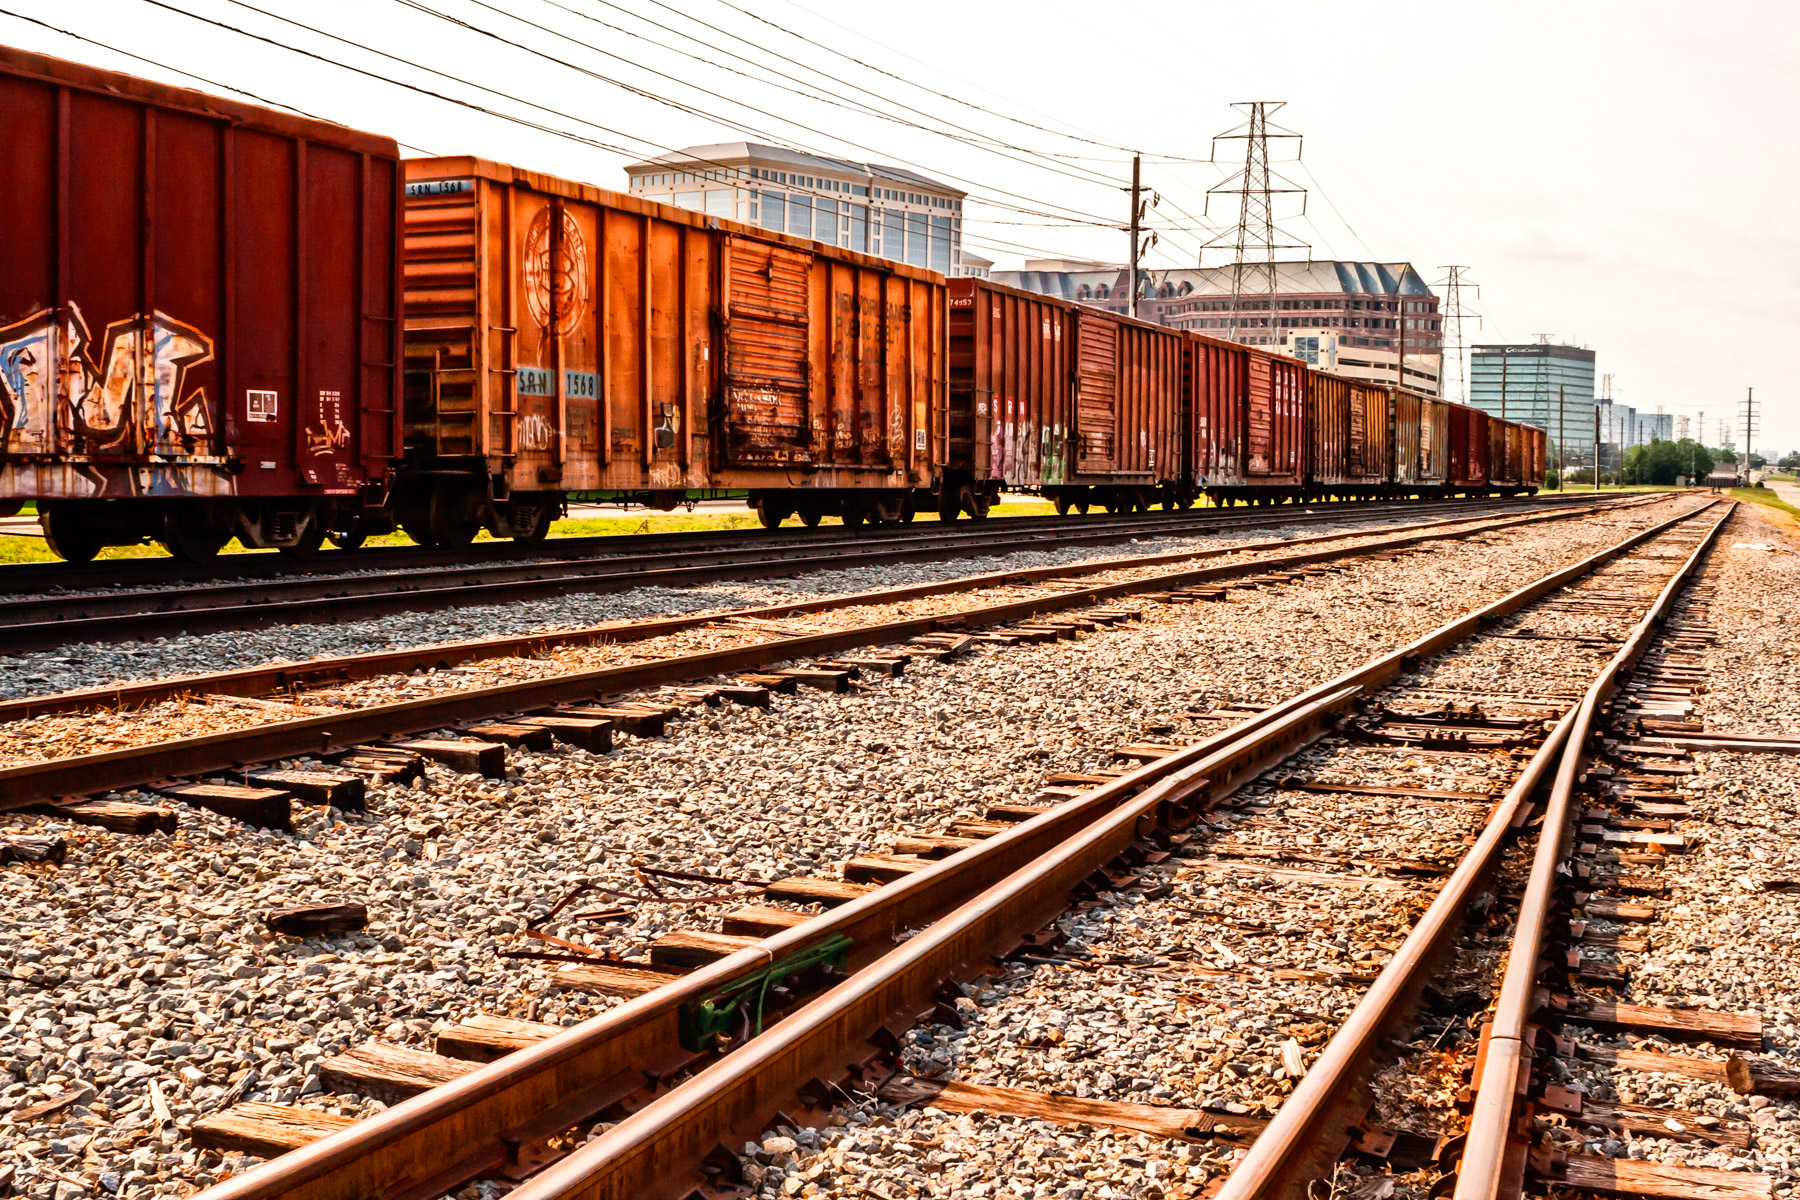 Boxcars idled on a railroad siding in Farmers Branch, Texas.